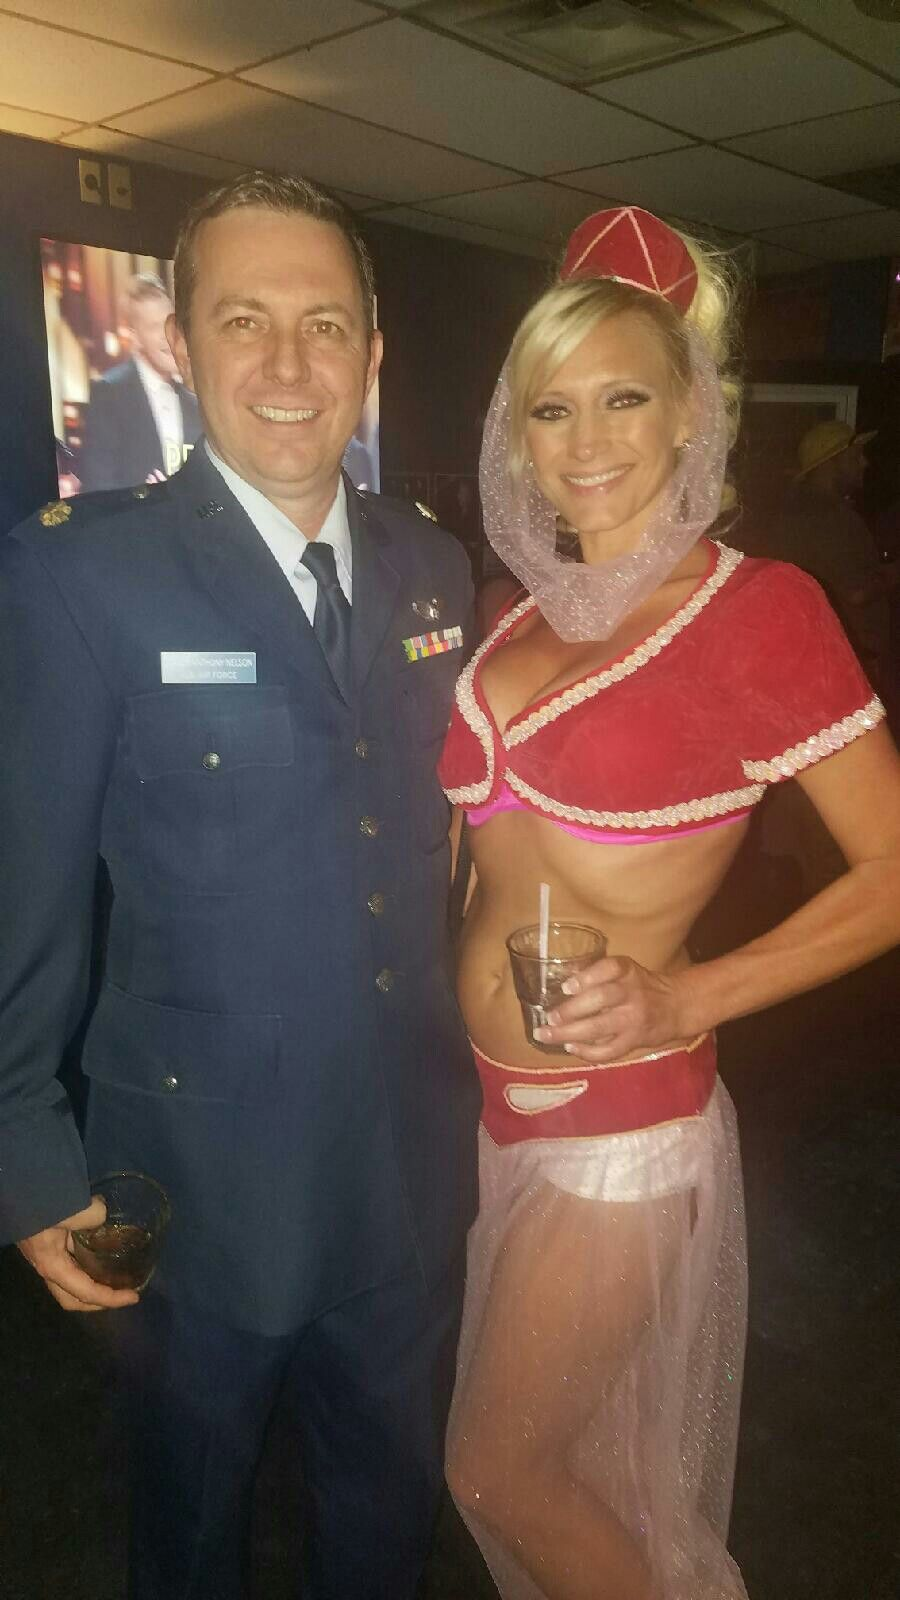 I Dream Of Jeannie Halloween Costume